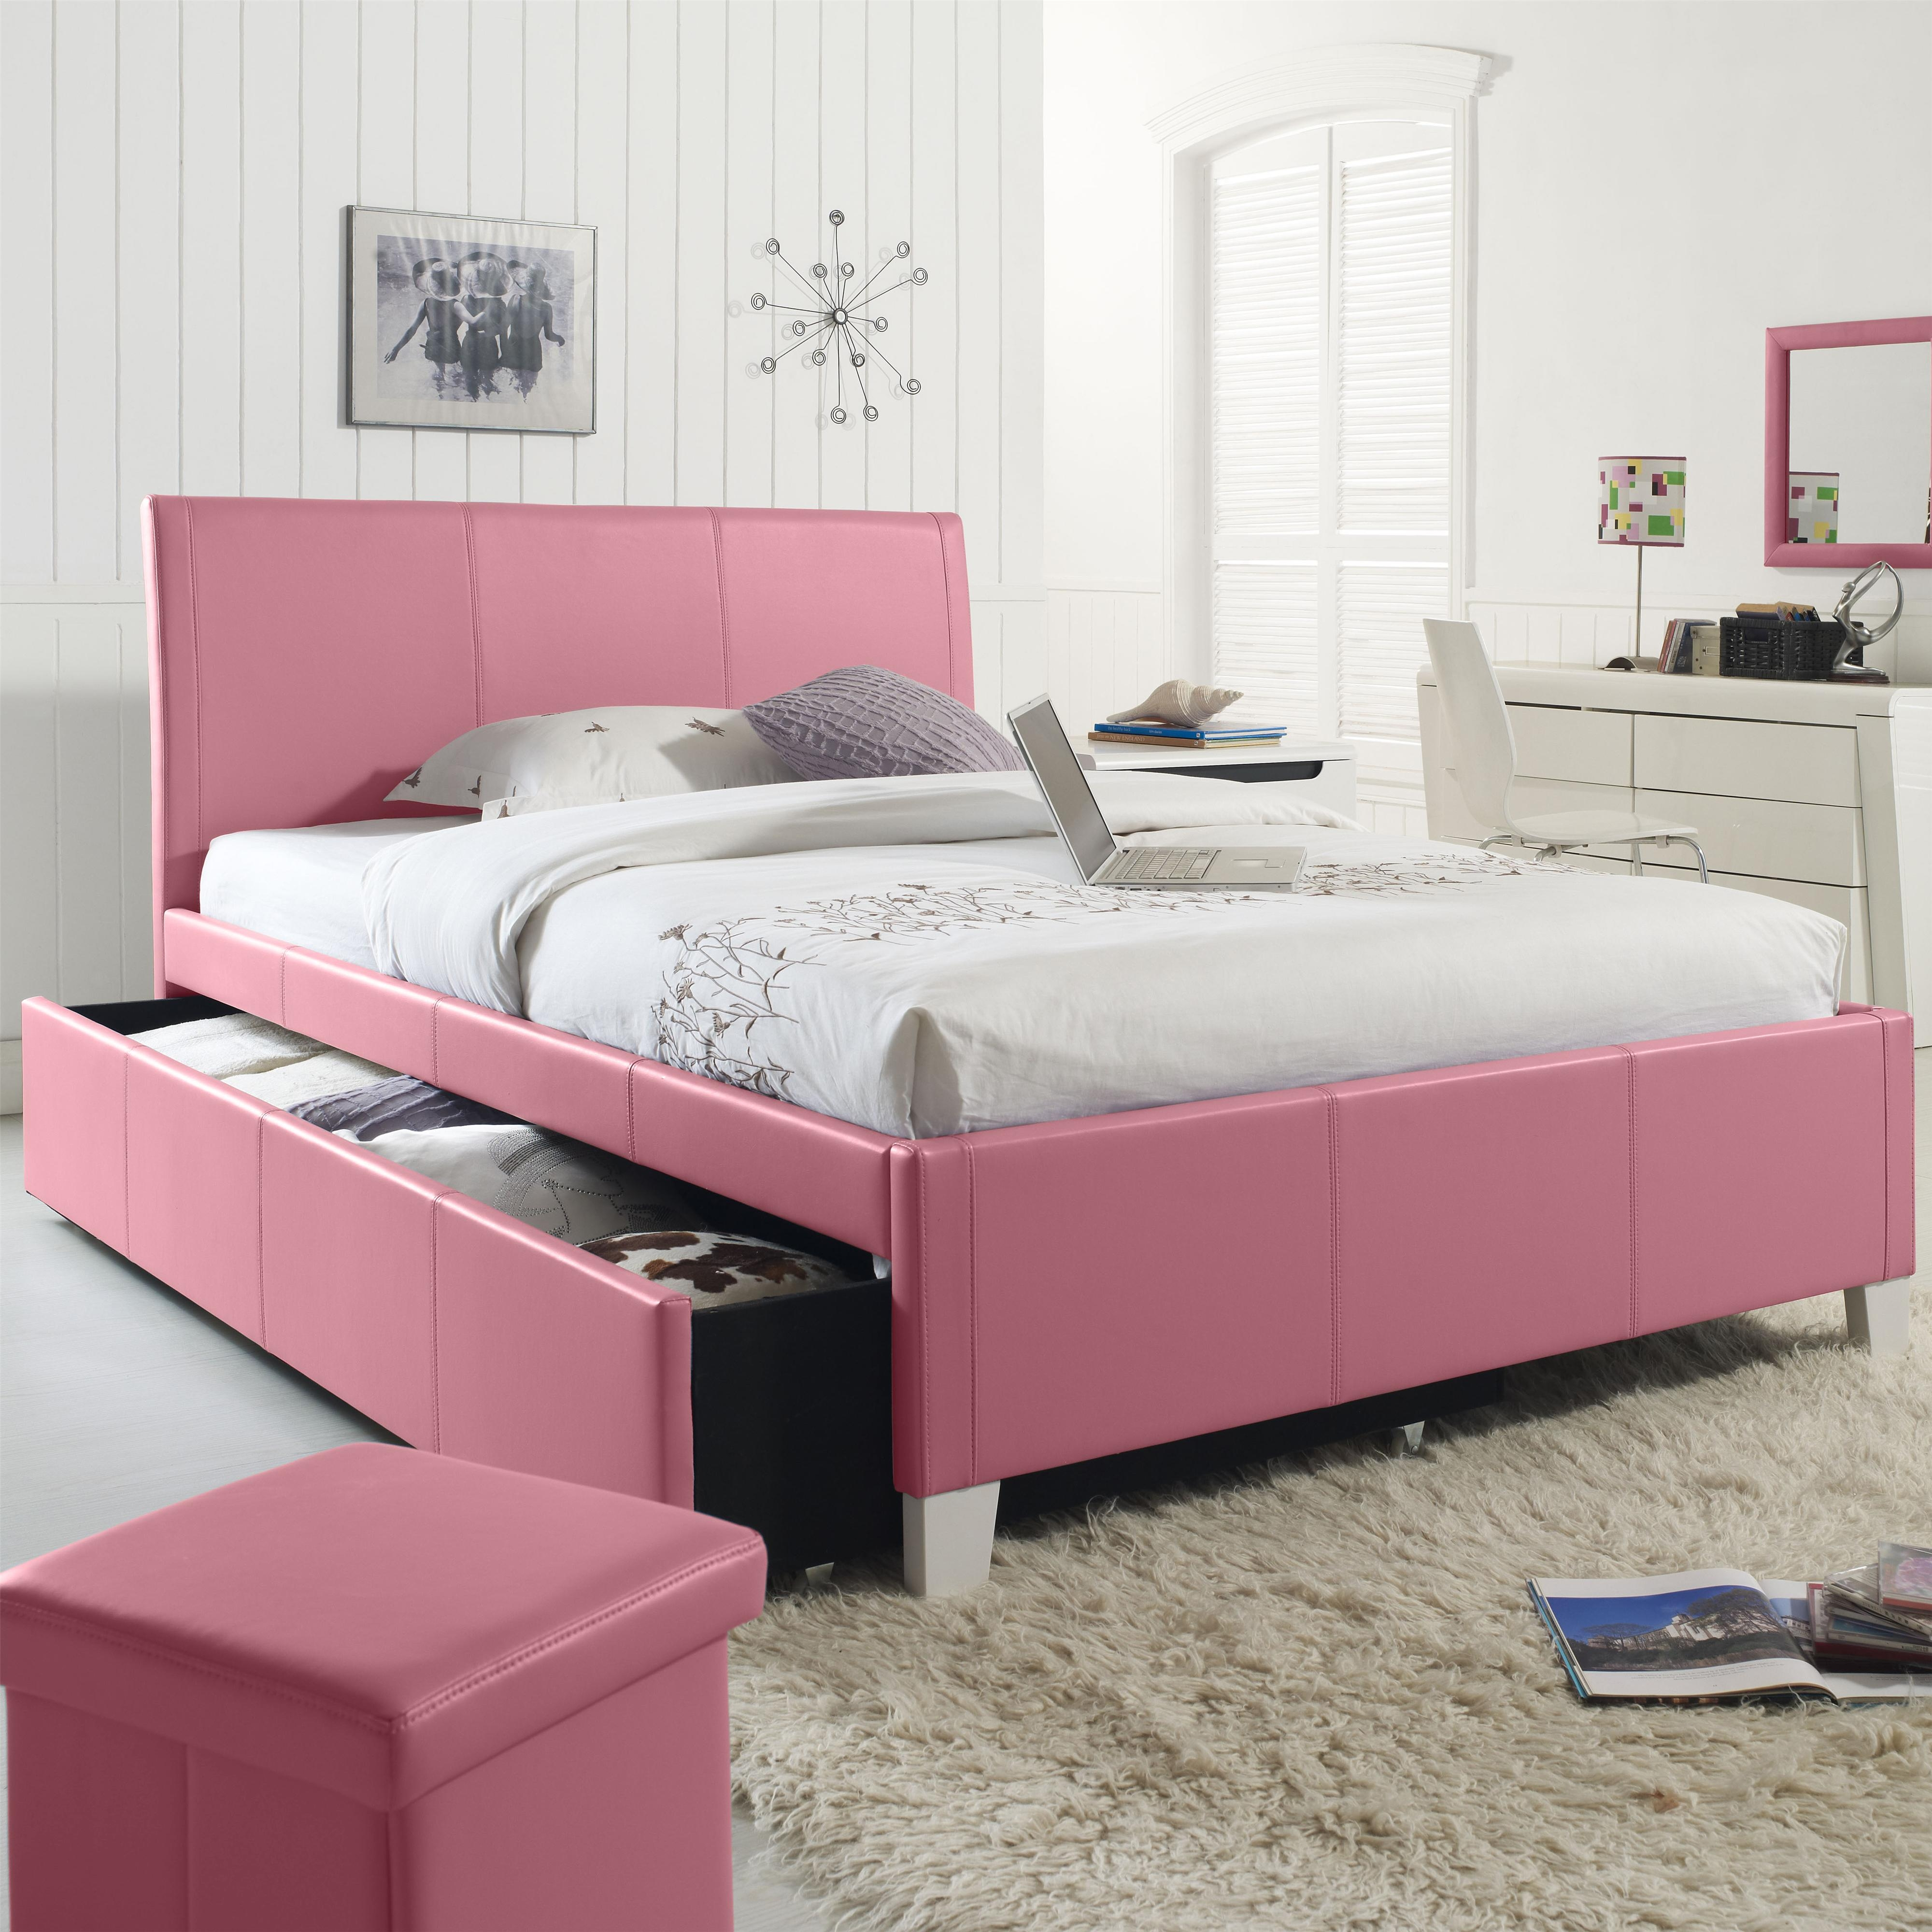 Pink Queen Size Bed Framepink leather bed with sliding storage under the bed combined with